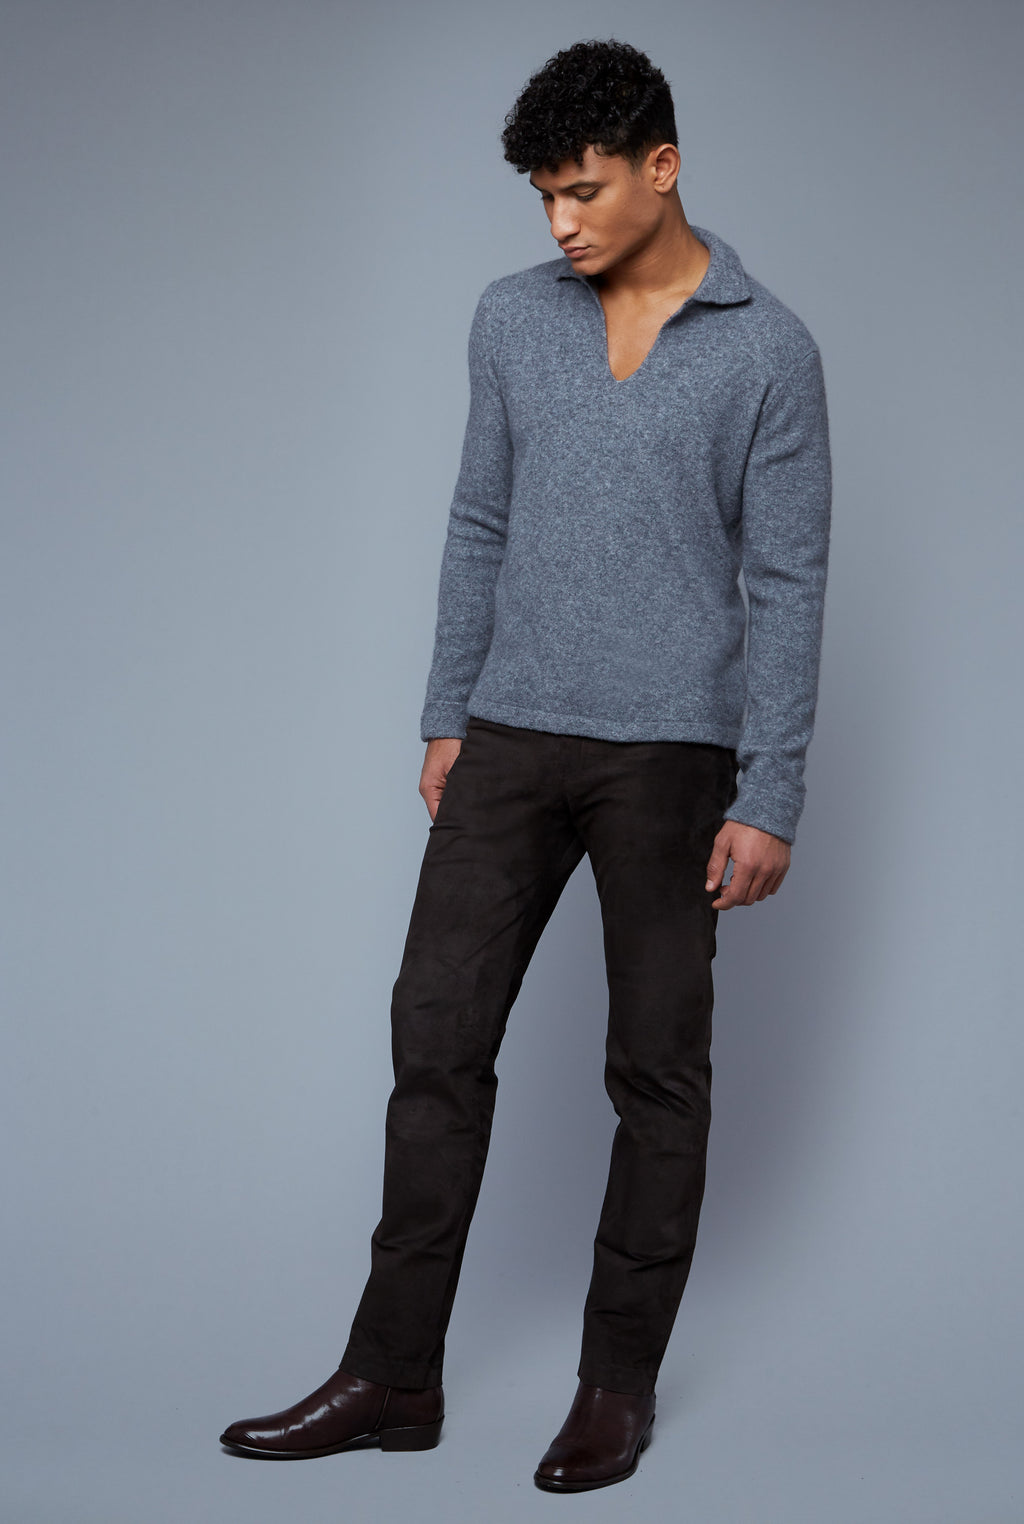 Three Quarter View: Model Tre Boutilier wearing Cashmere Boucle Sweater